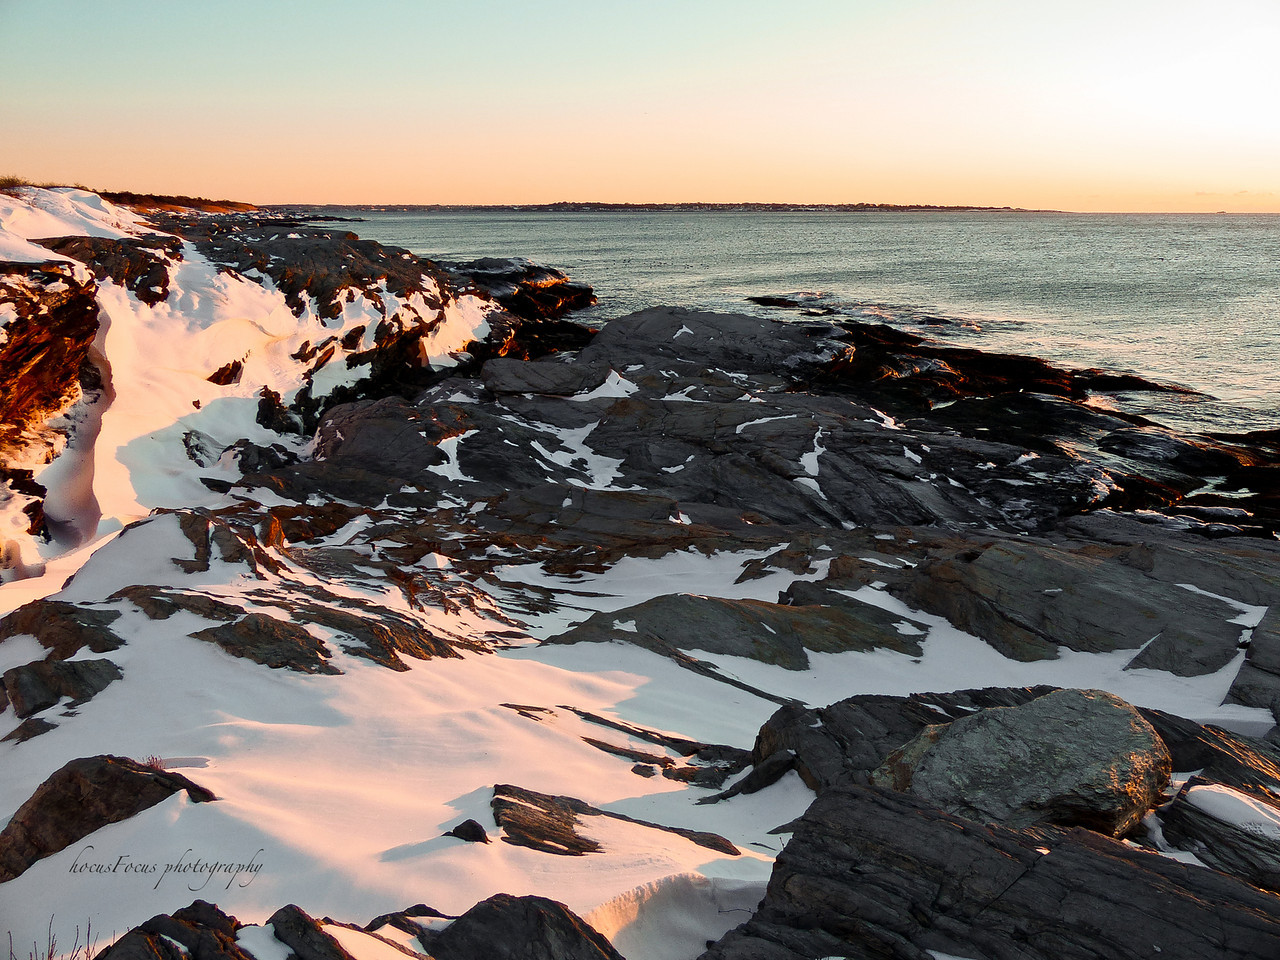 A bitter cold sunrise! It was only 2 degrees and the wind was howling. My fingers were completely numb after only 10 minutes.<br /> <br /> Beavertail State Park<br /> Jamestown, RI